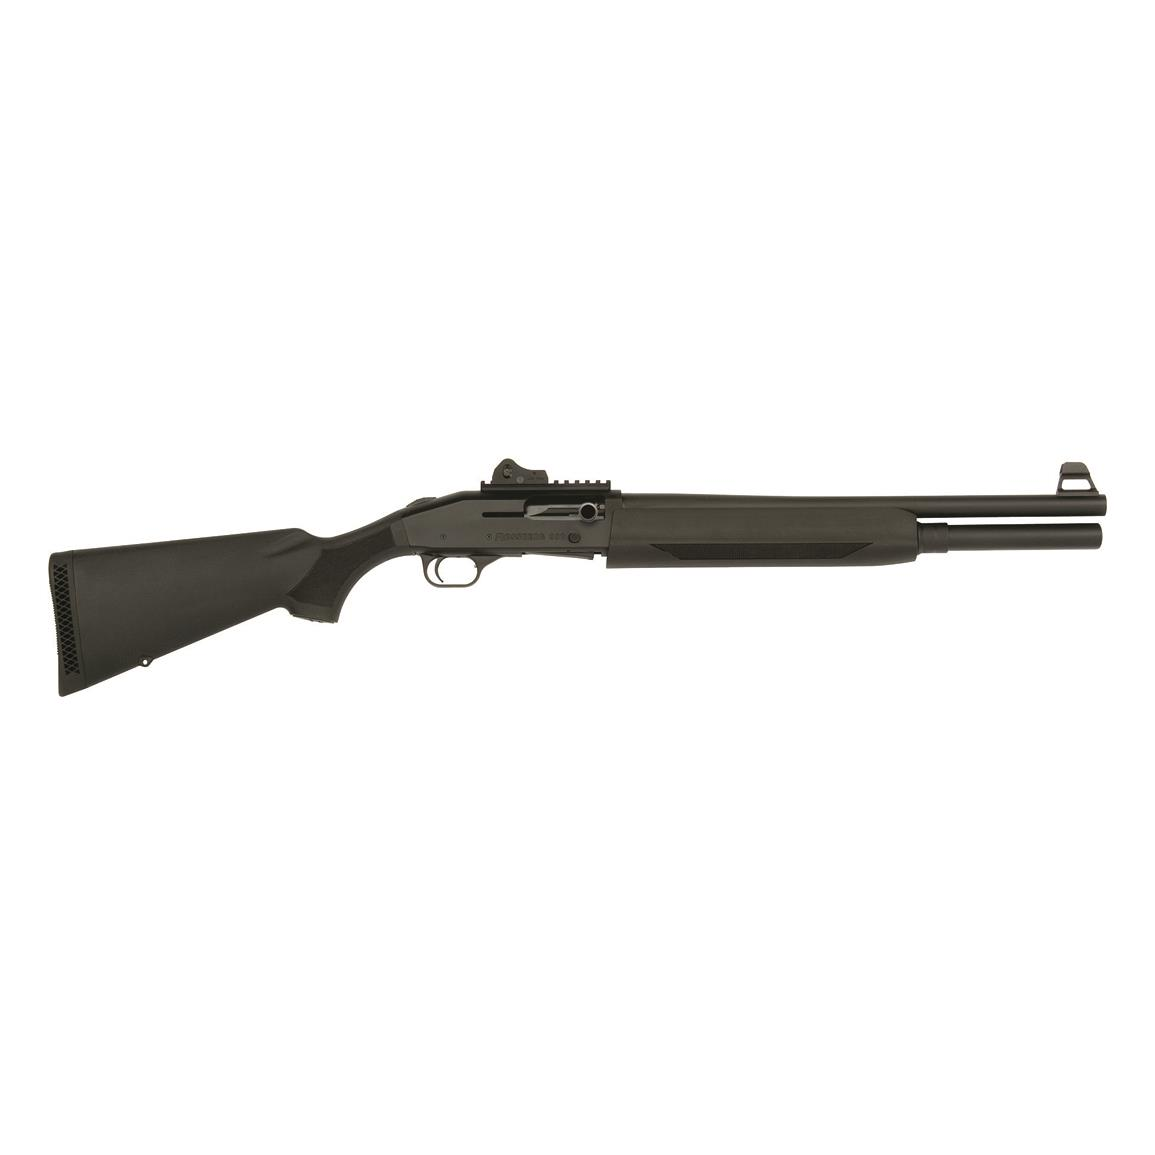 "Mossberg 930 Home Security, Semi-Automatic, 12 Gauge, 18.5"" Barrel, 8 Rounds"